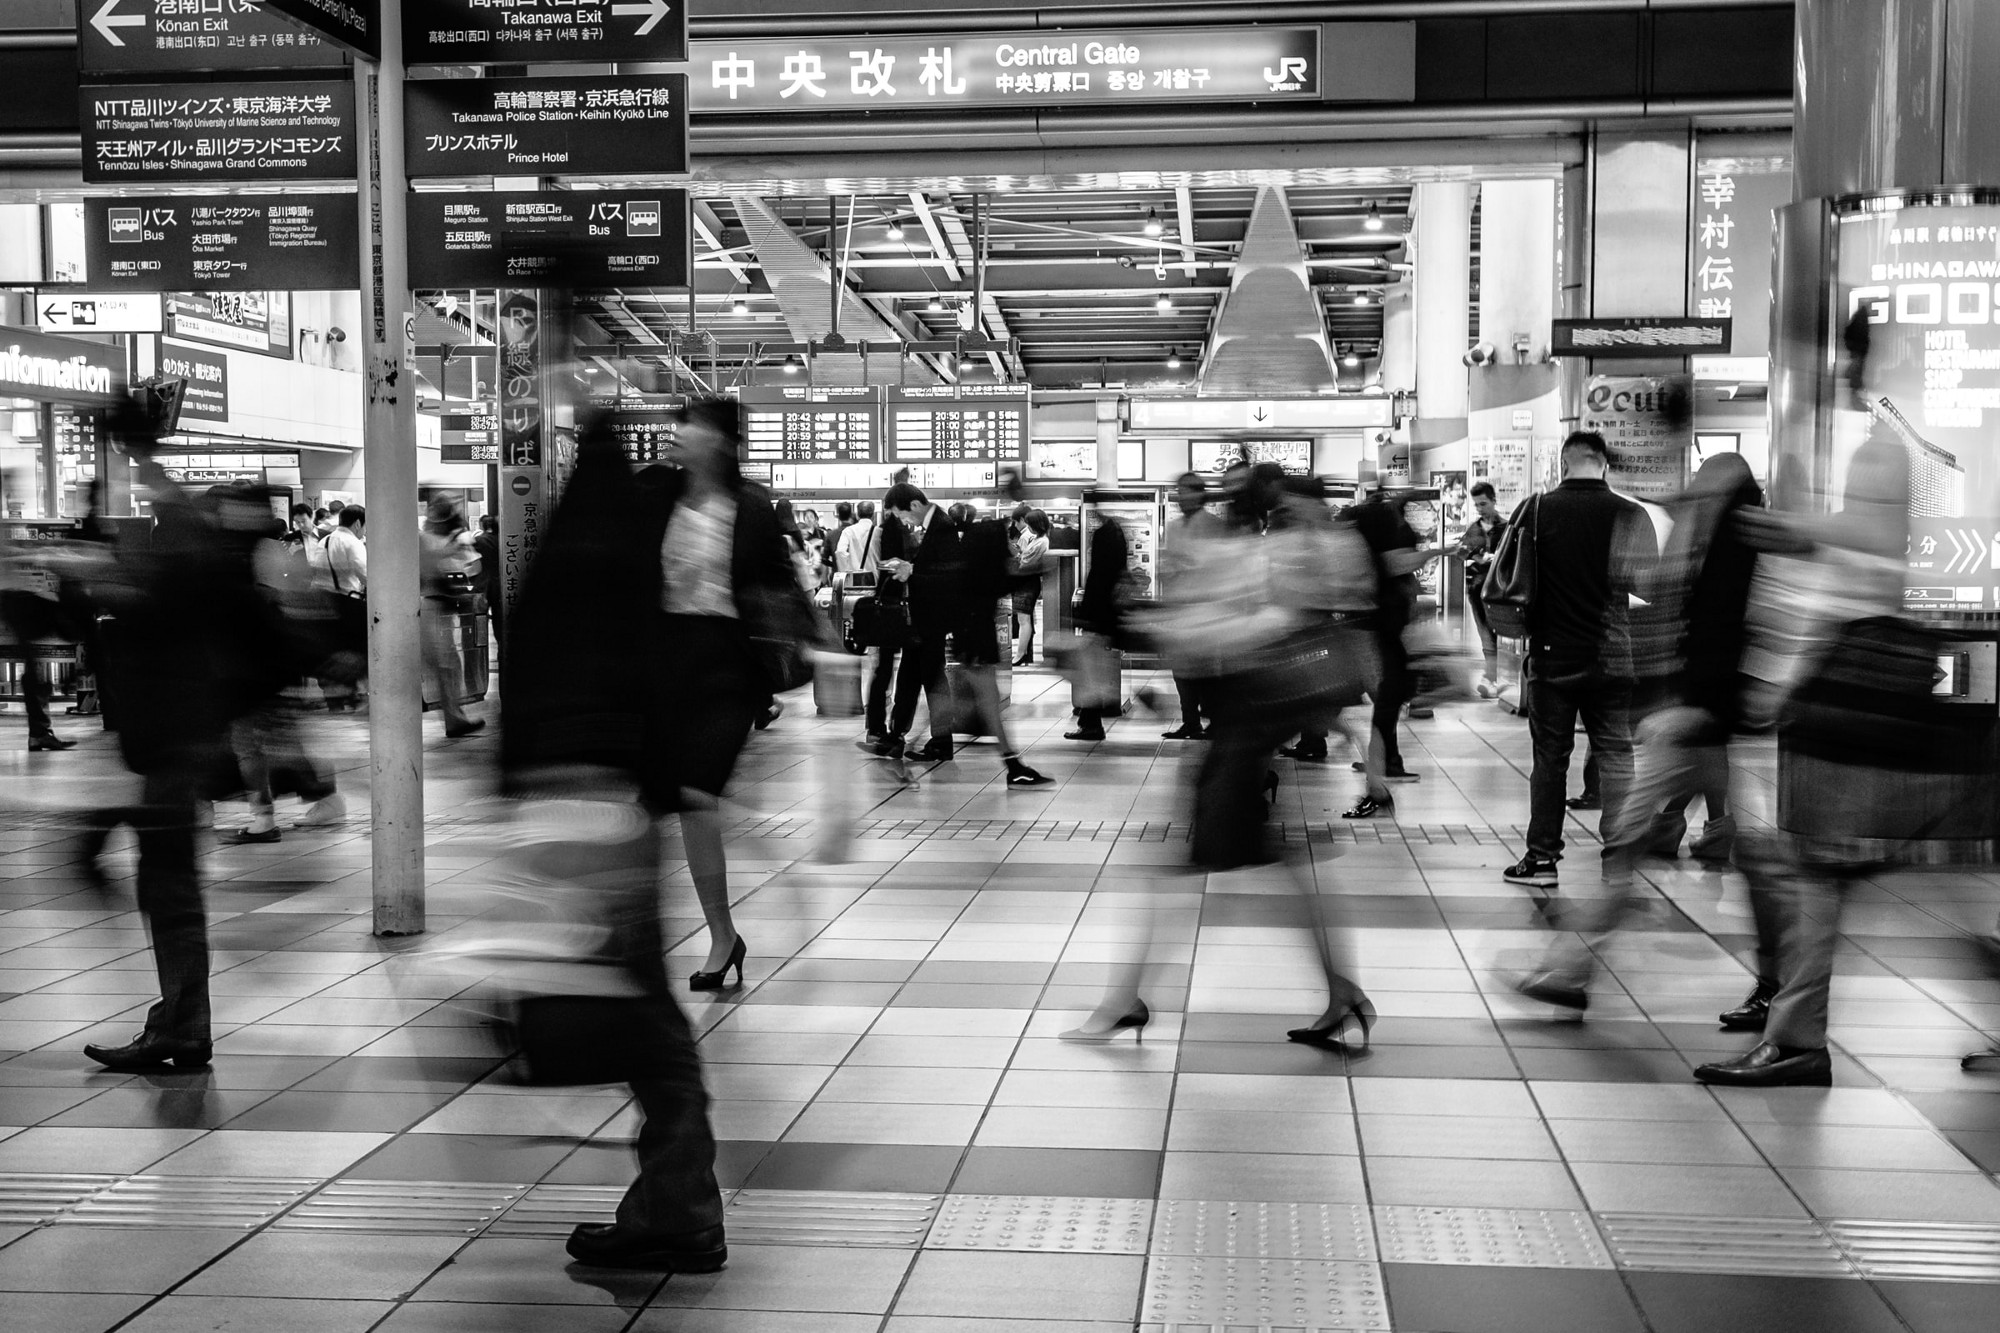 A busy metro station in Japan